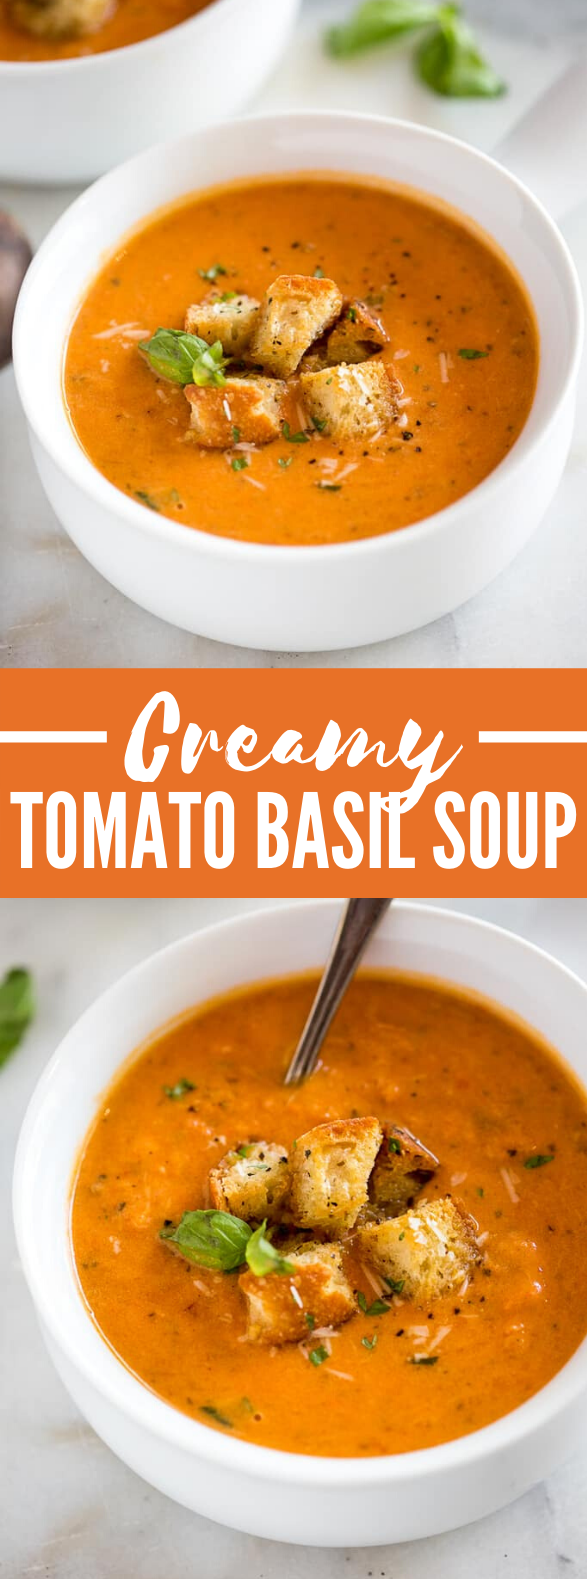 CREAMY TOMATO BASIL SOUP #appetizers #dinner